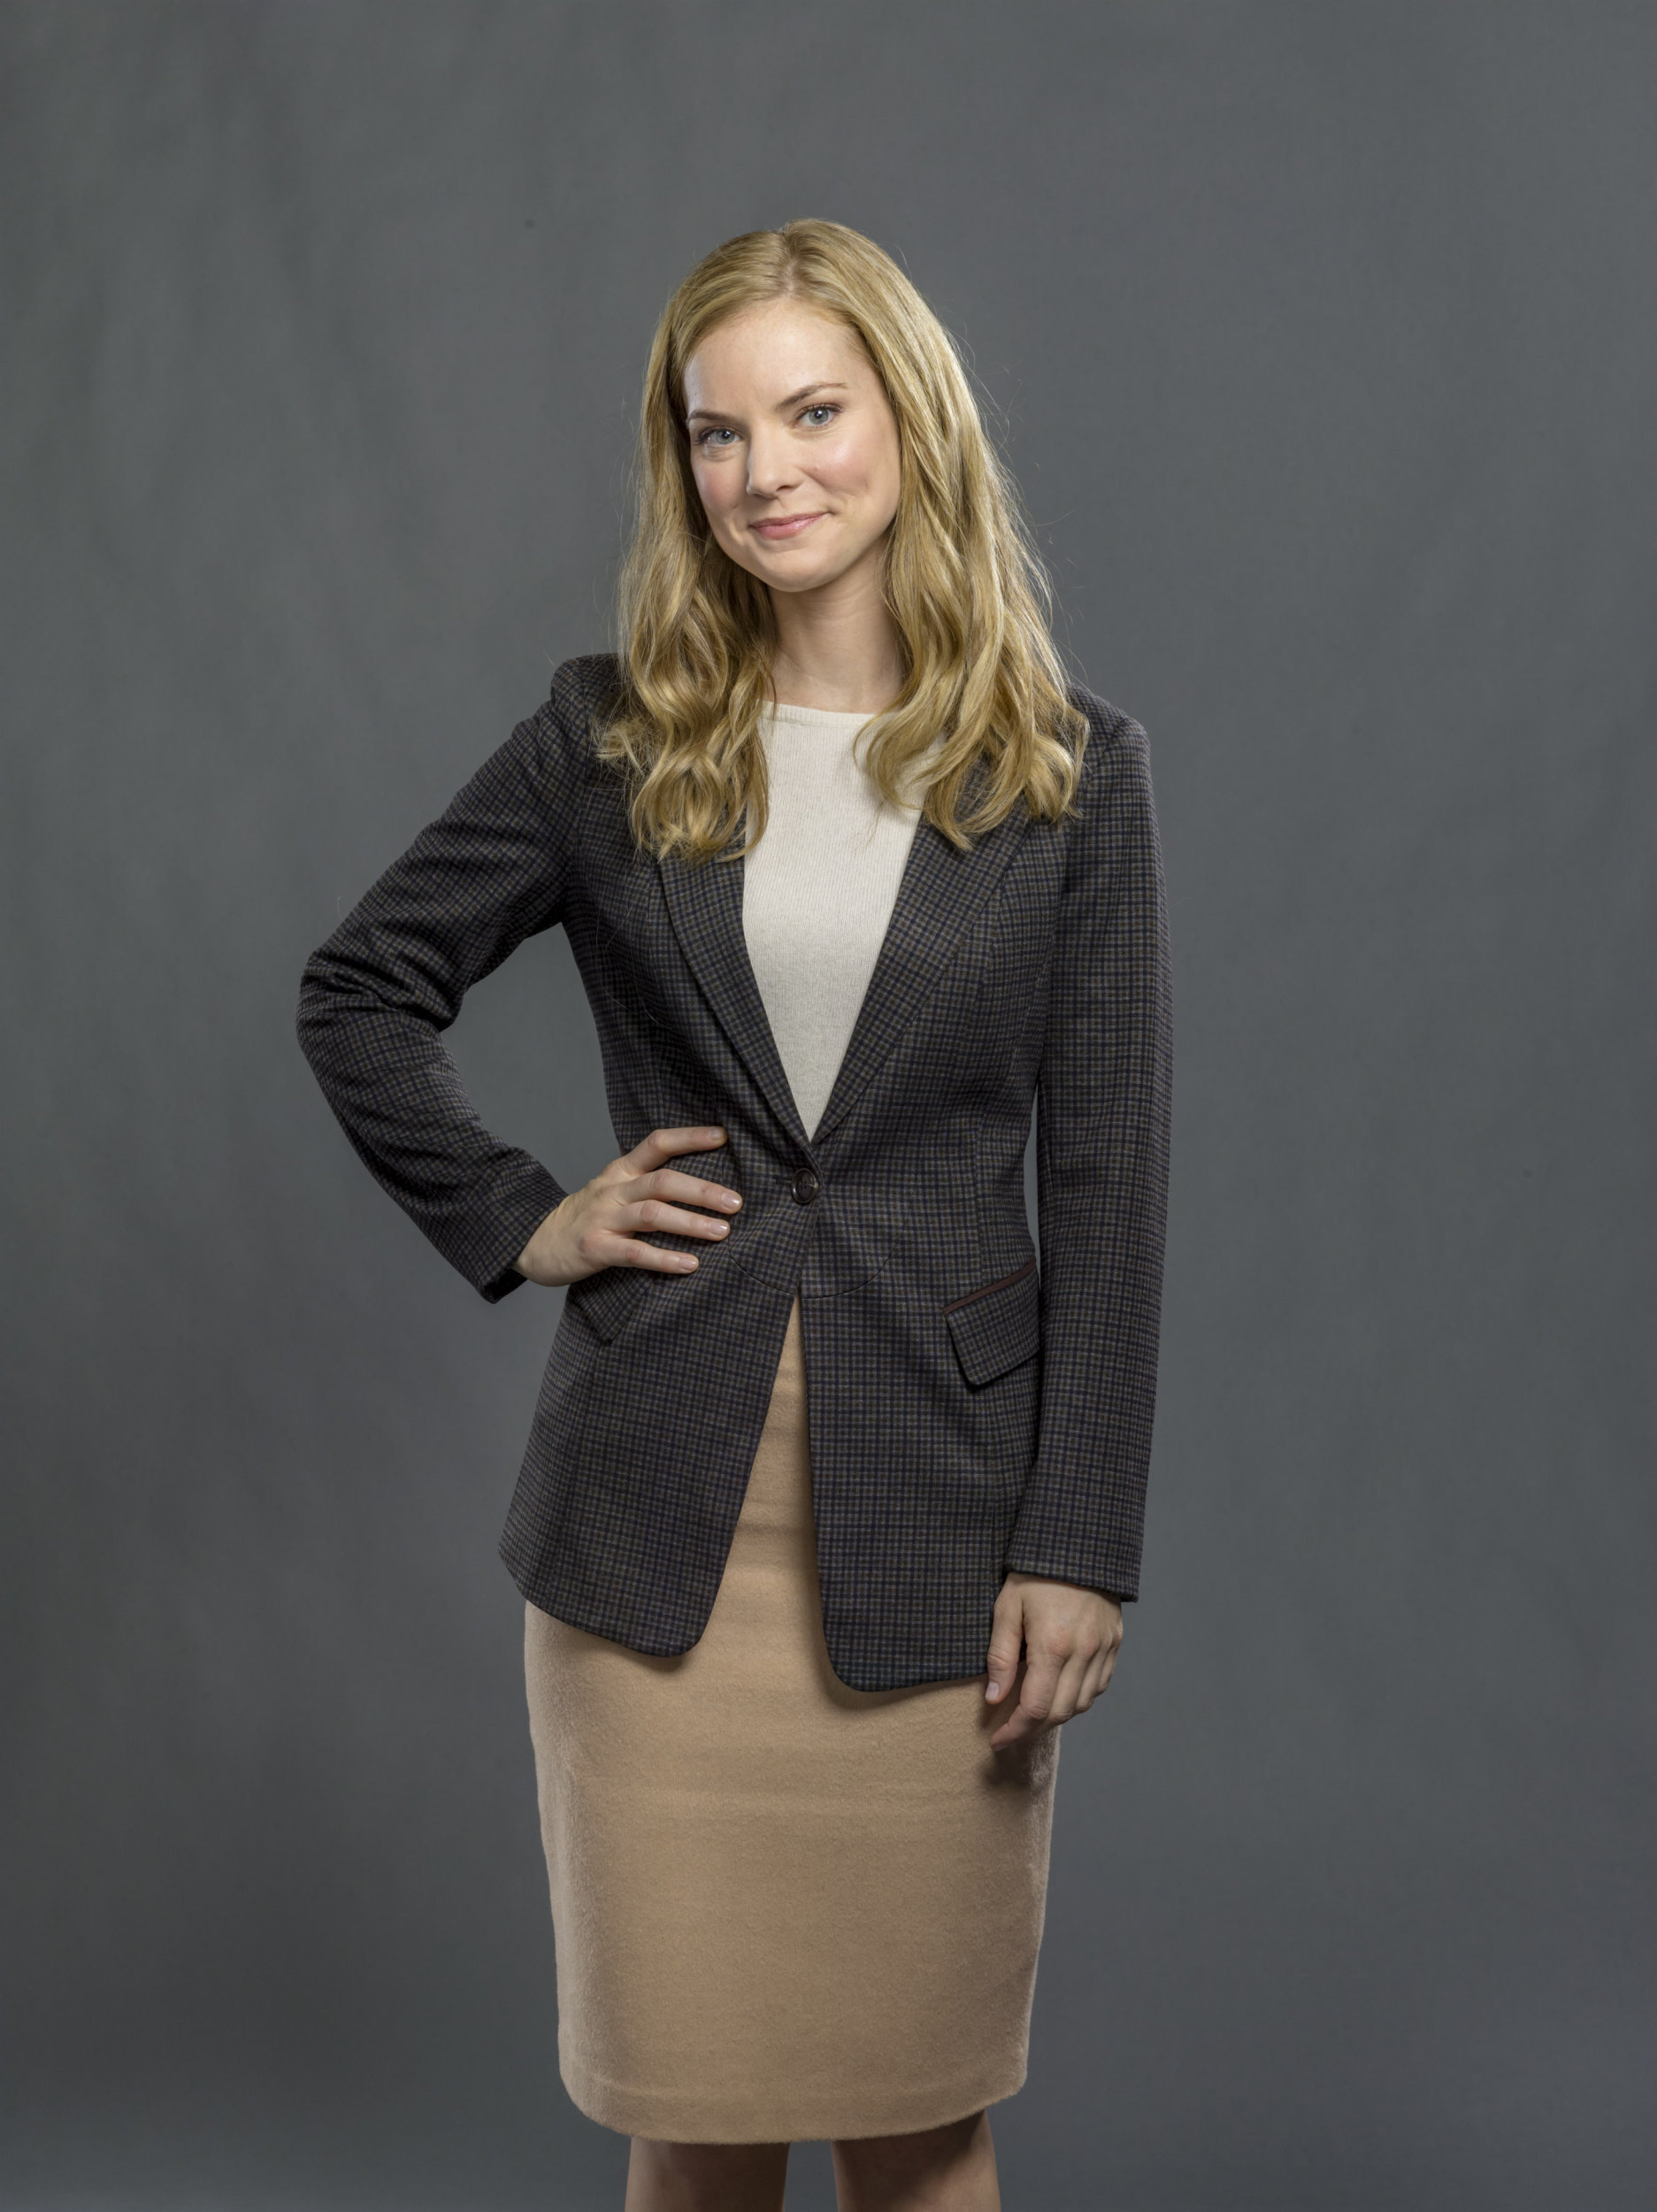 cindy busby twitter